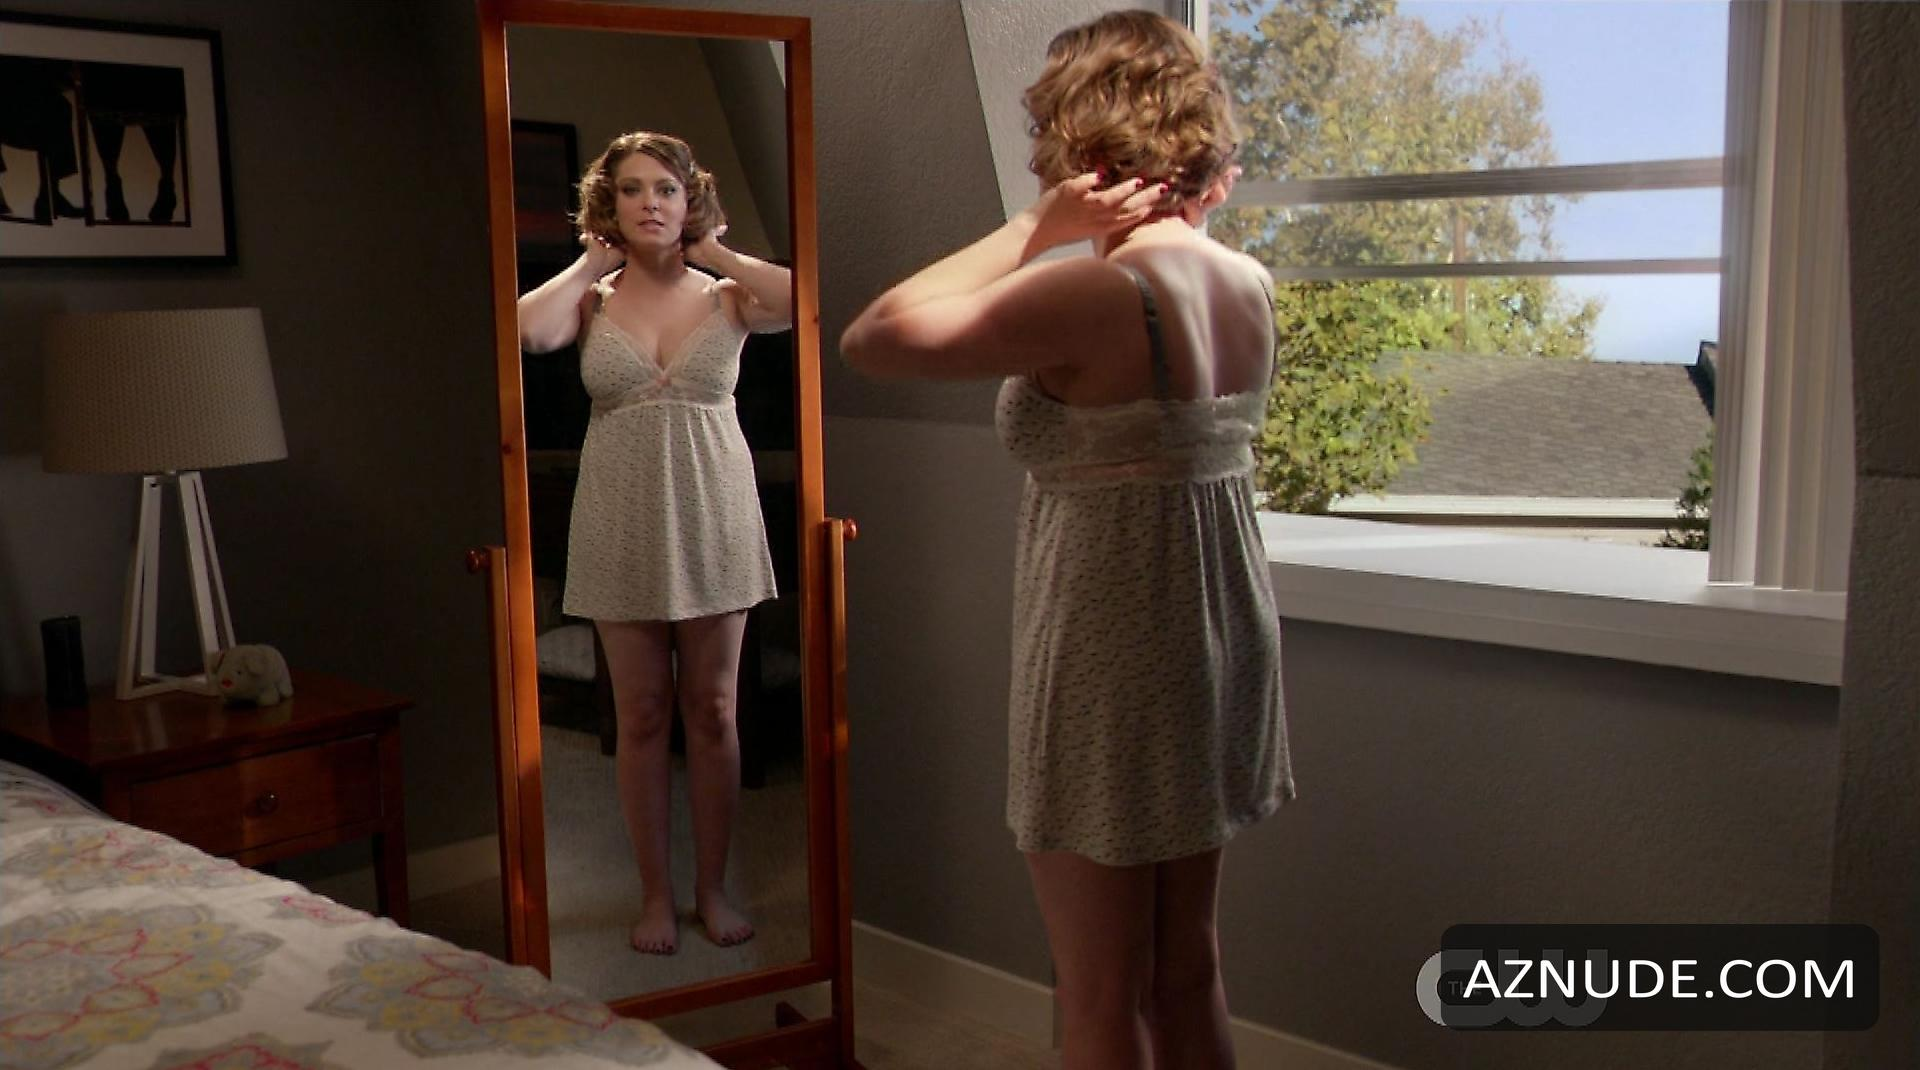 Nudes Rachel Bloom nudes (82 photos), Tits, Bikini, Boobs, cameltoe 2018